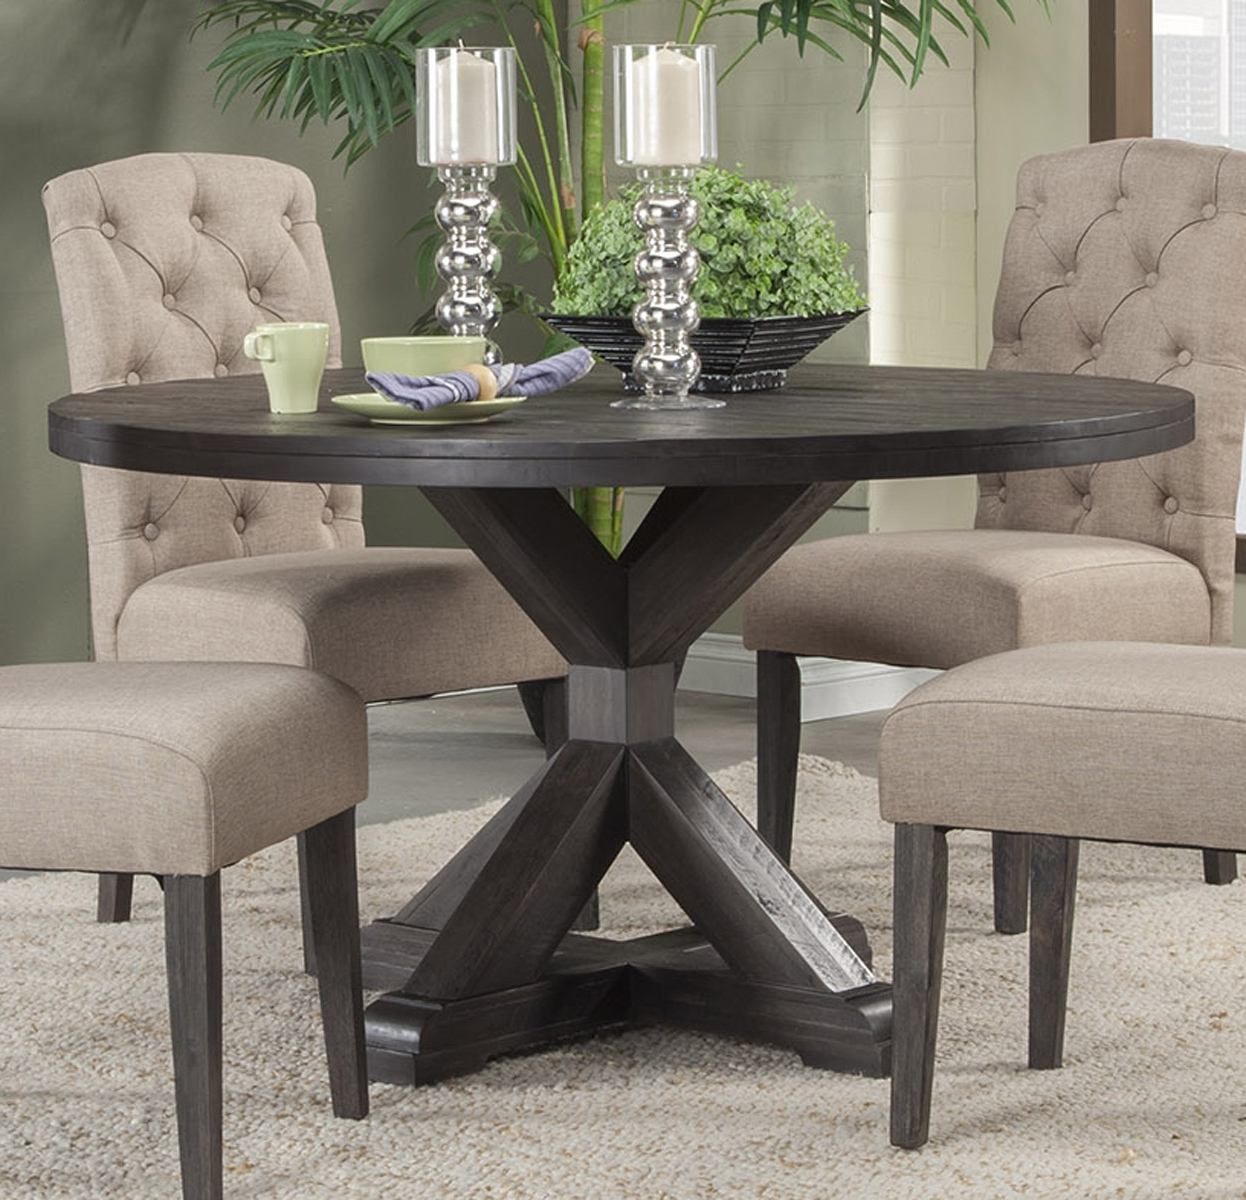 Preferred Alpine Furniture Newberry Round Dining Table In Salvaged Grey 1468 With Dining Tables Grey Chairs (View 20 of 25)